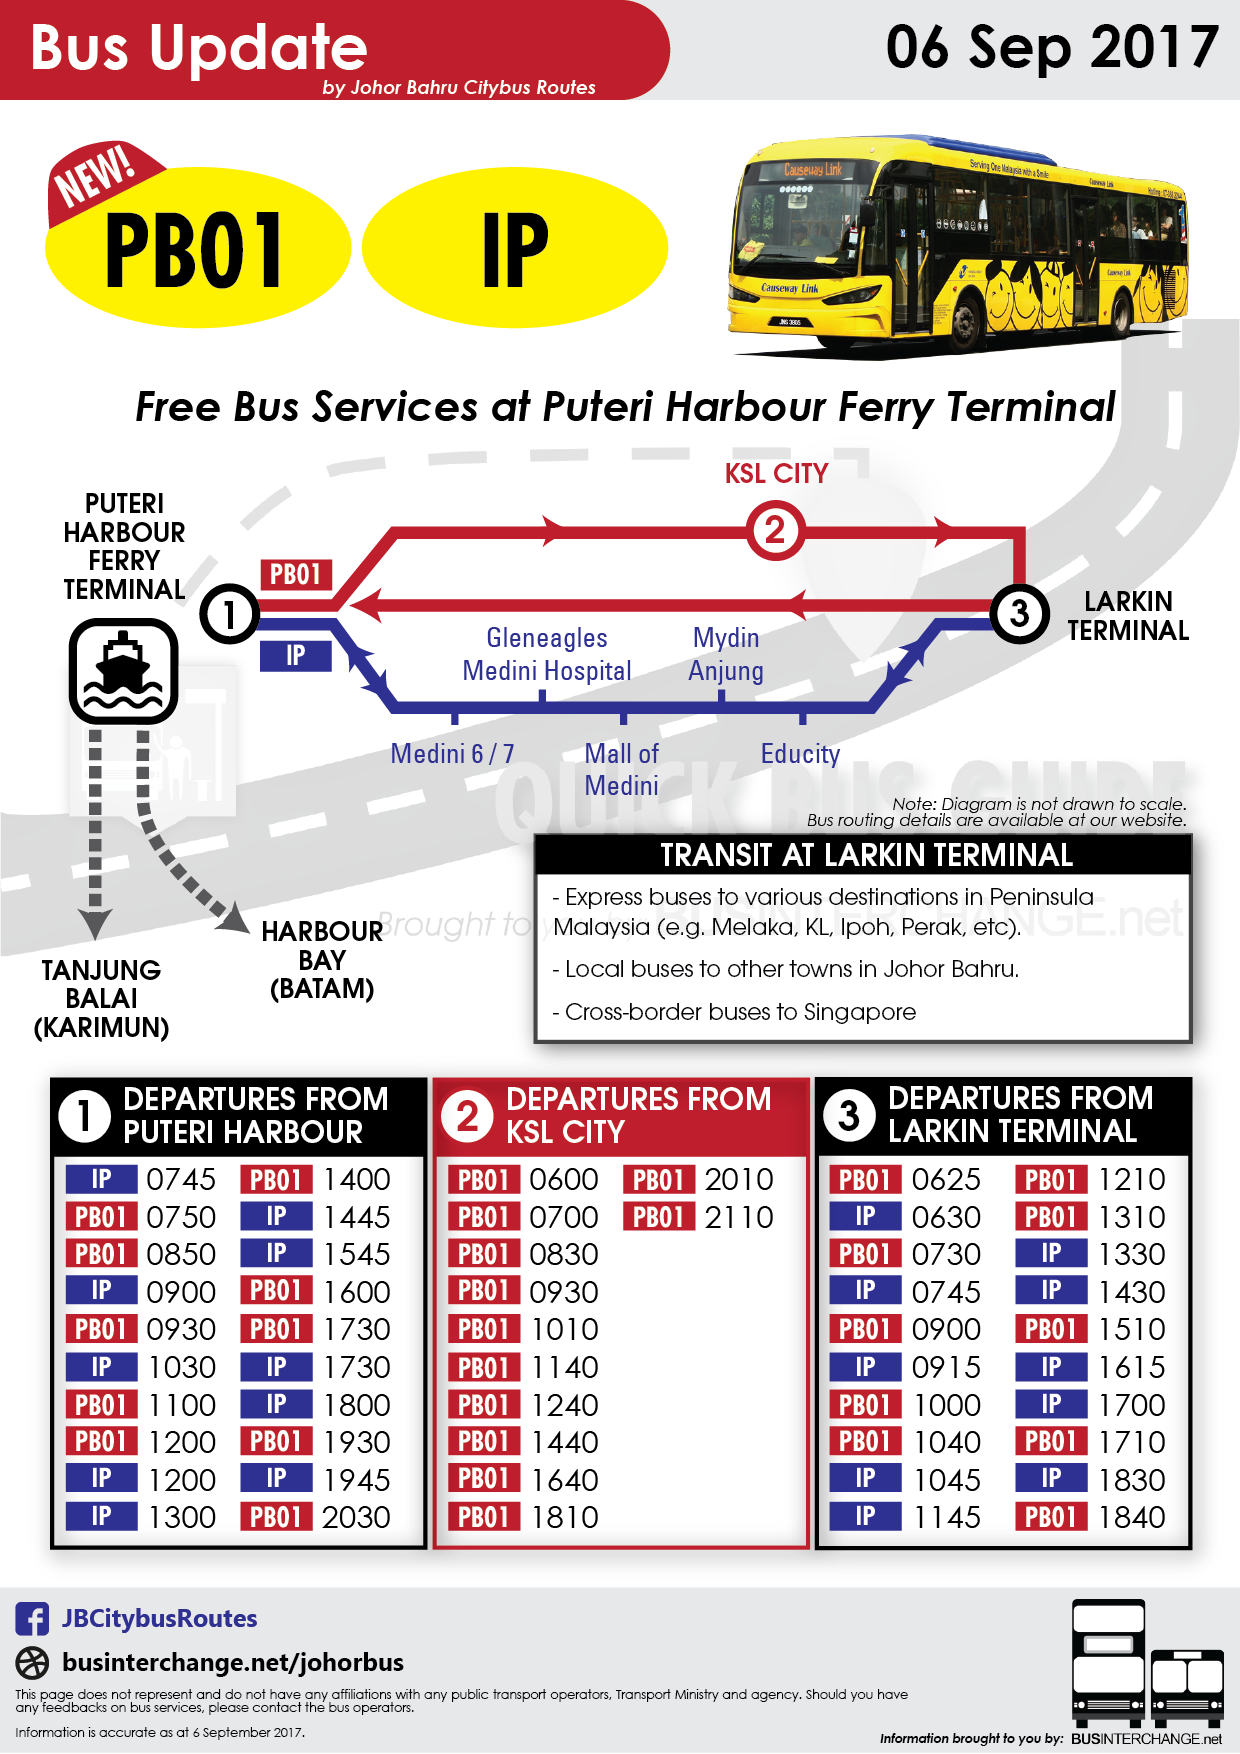 Collated bus timetables for Iskandar Puteri Free Shuttle IP and new bus service PB01.